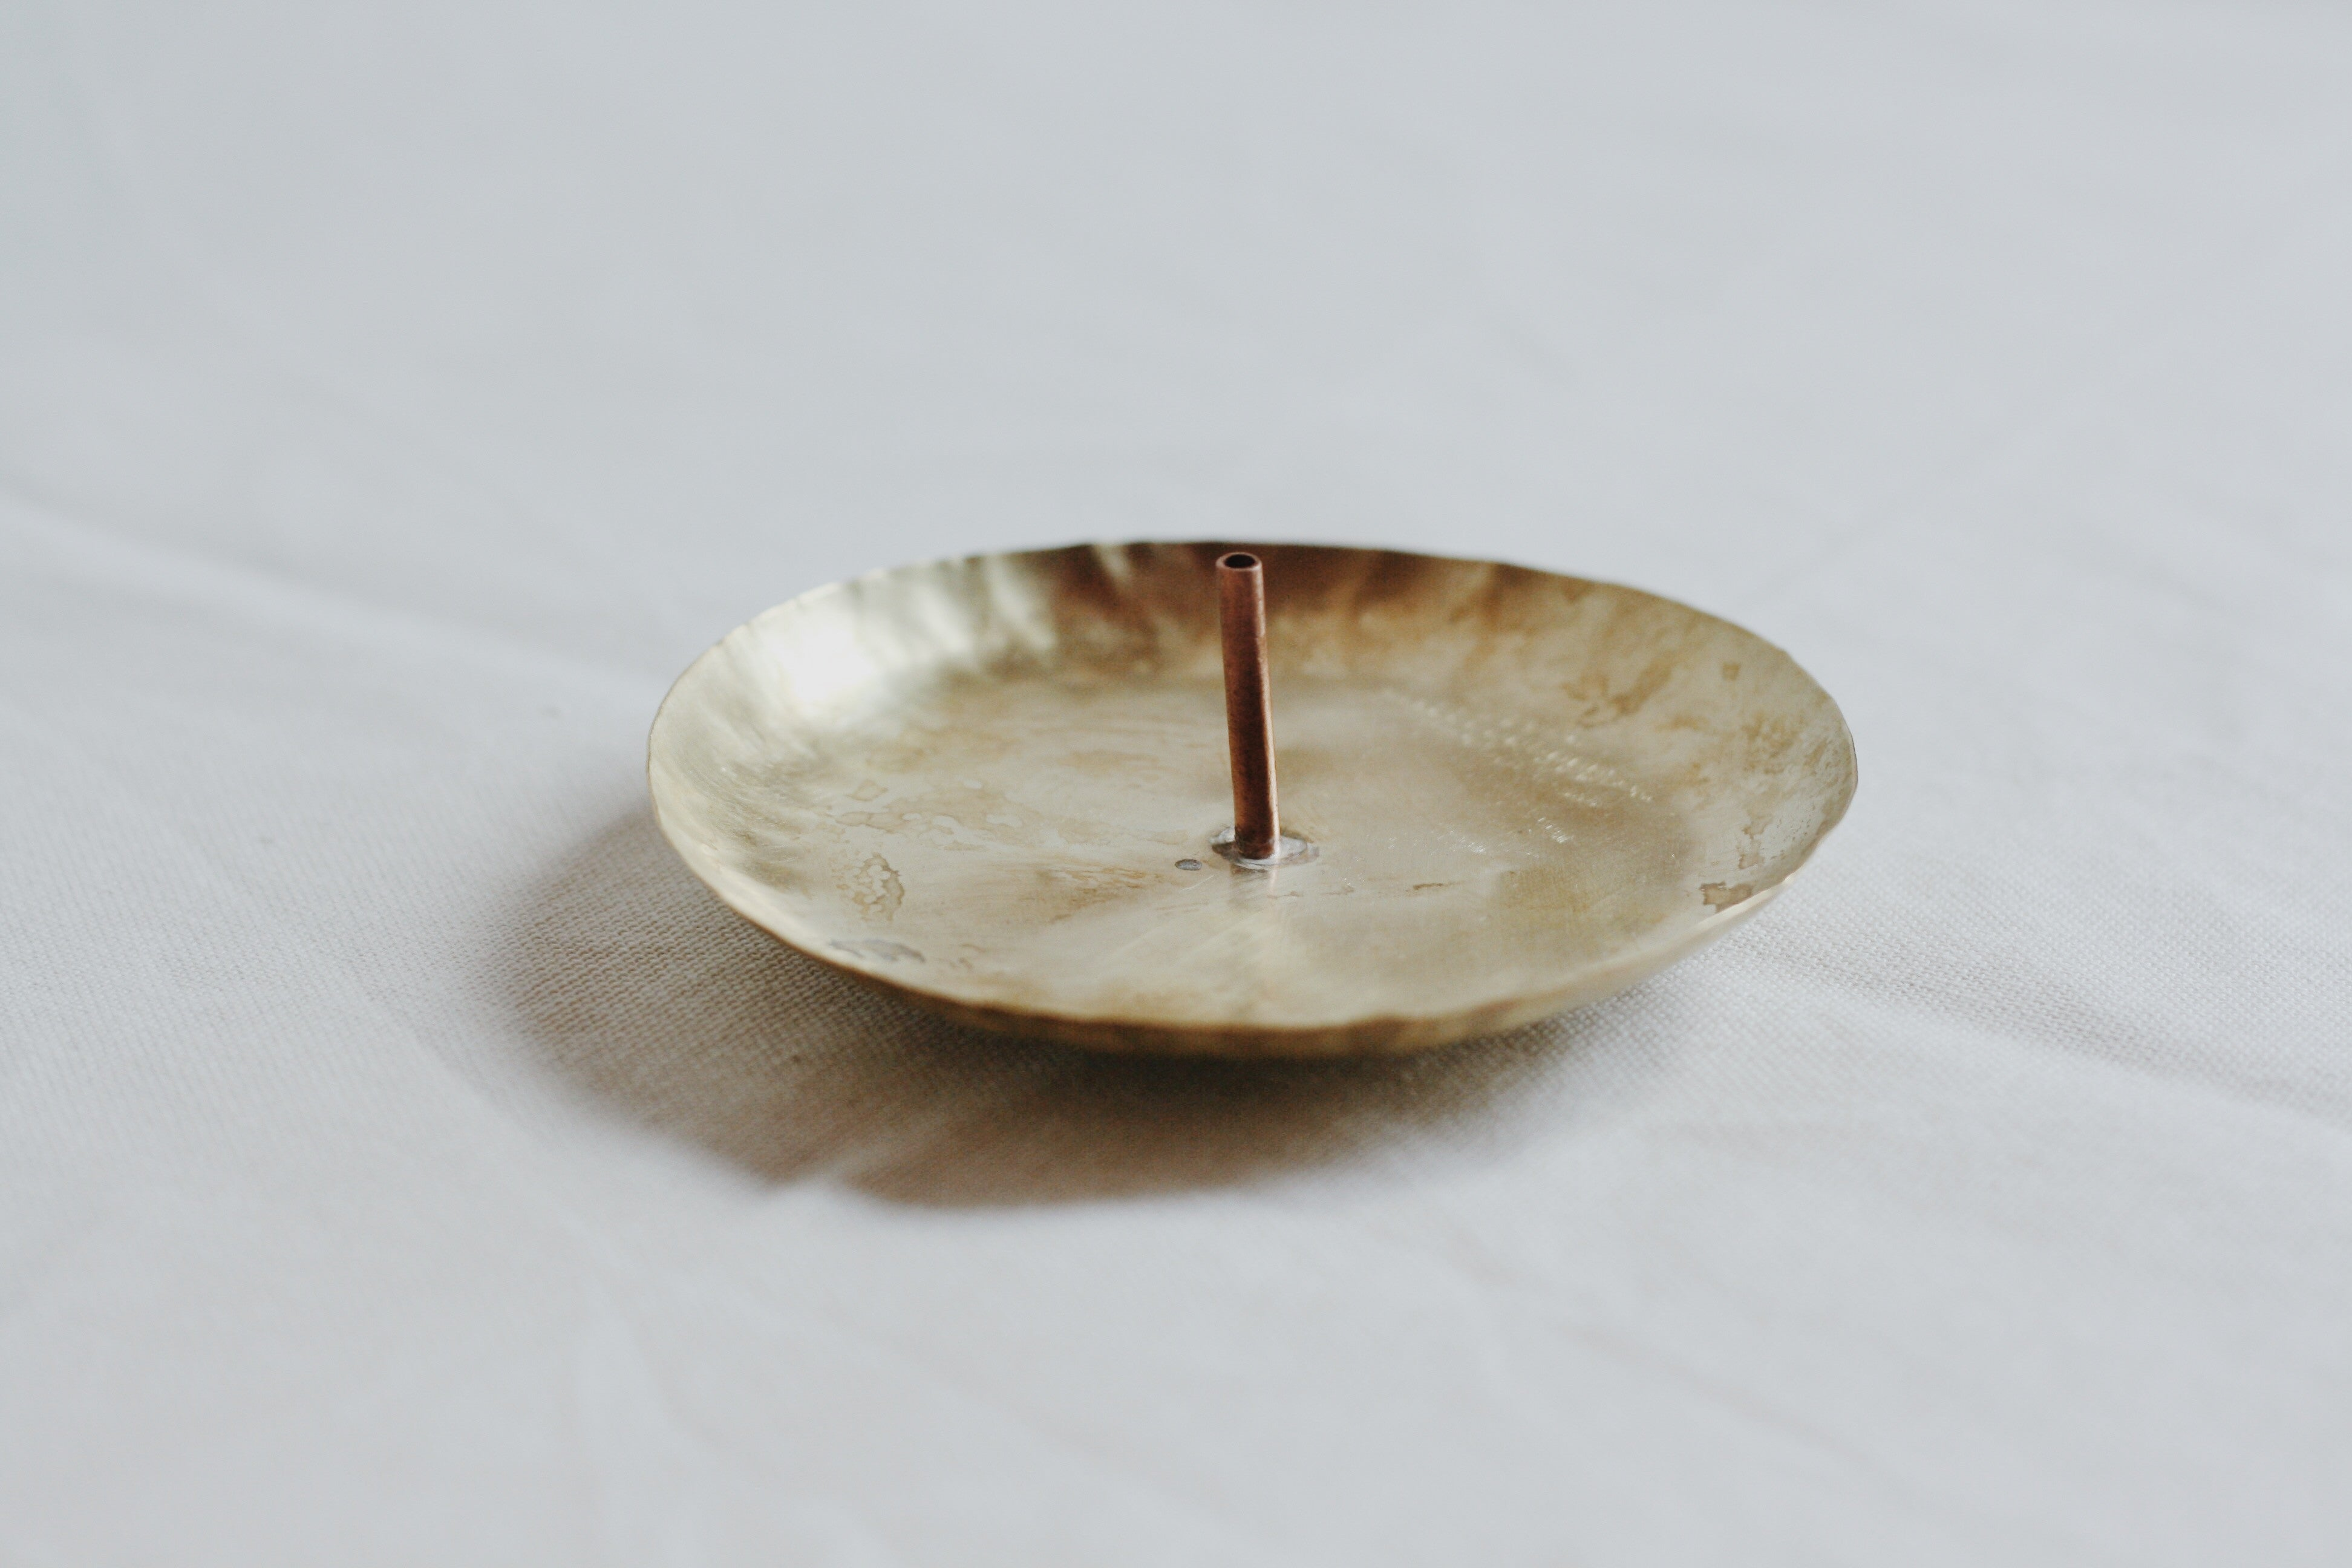 footed-brass-incense-holder-tray-handmade-christina-nicole